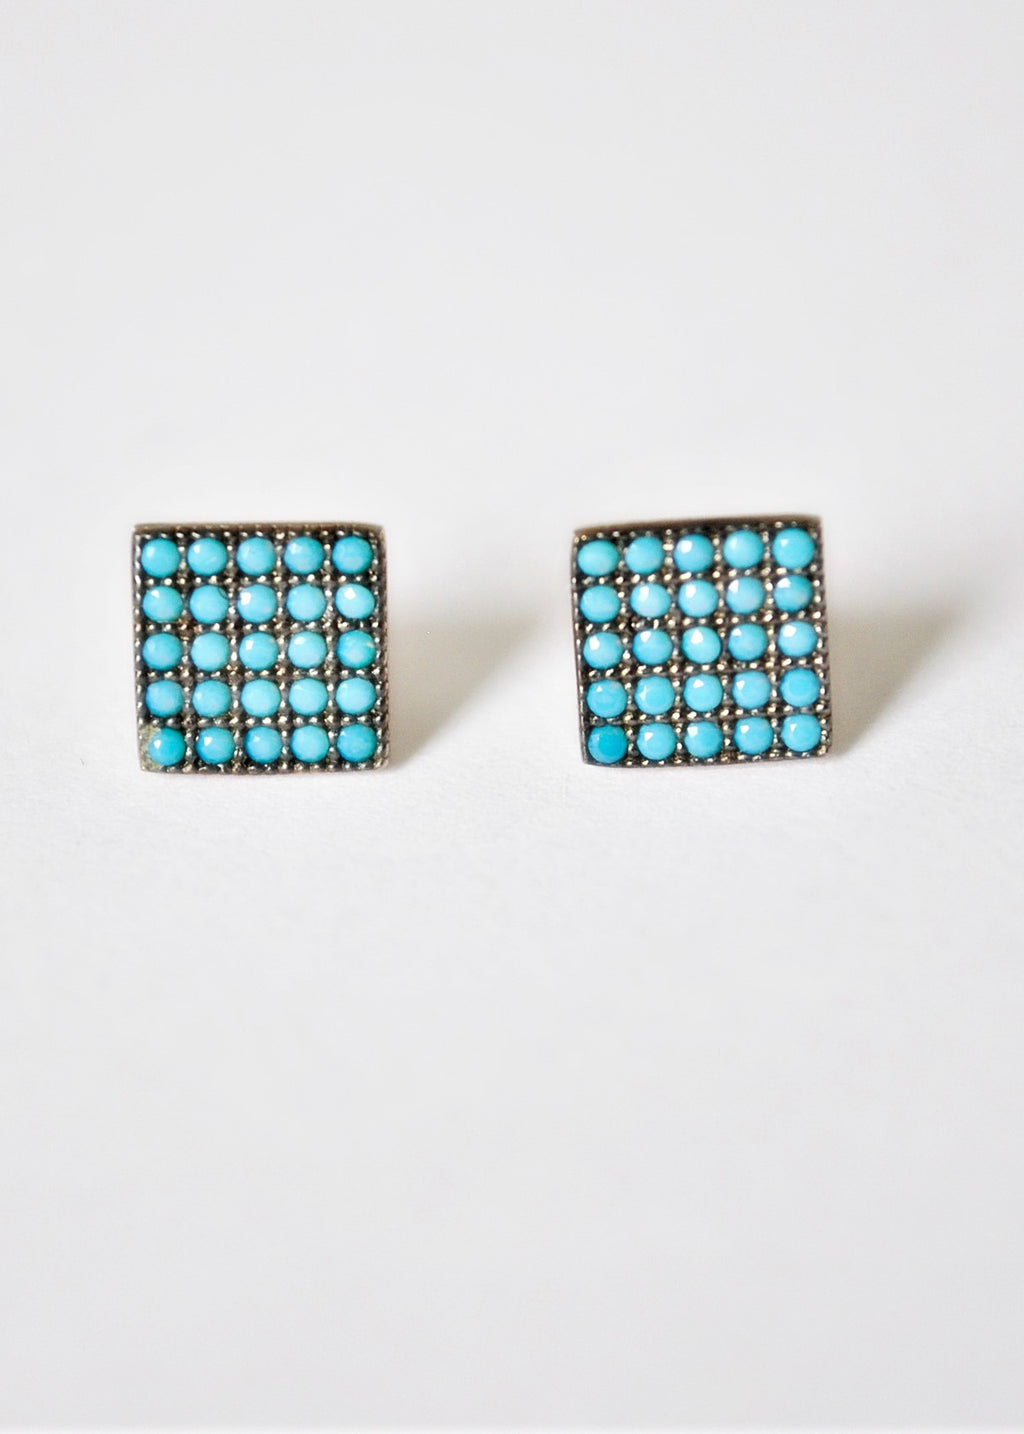 Turquoise Square Earrings